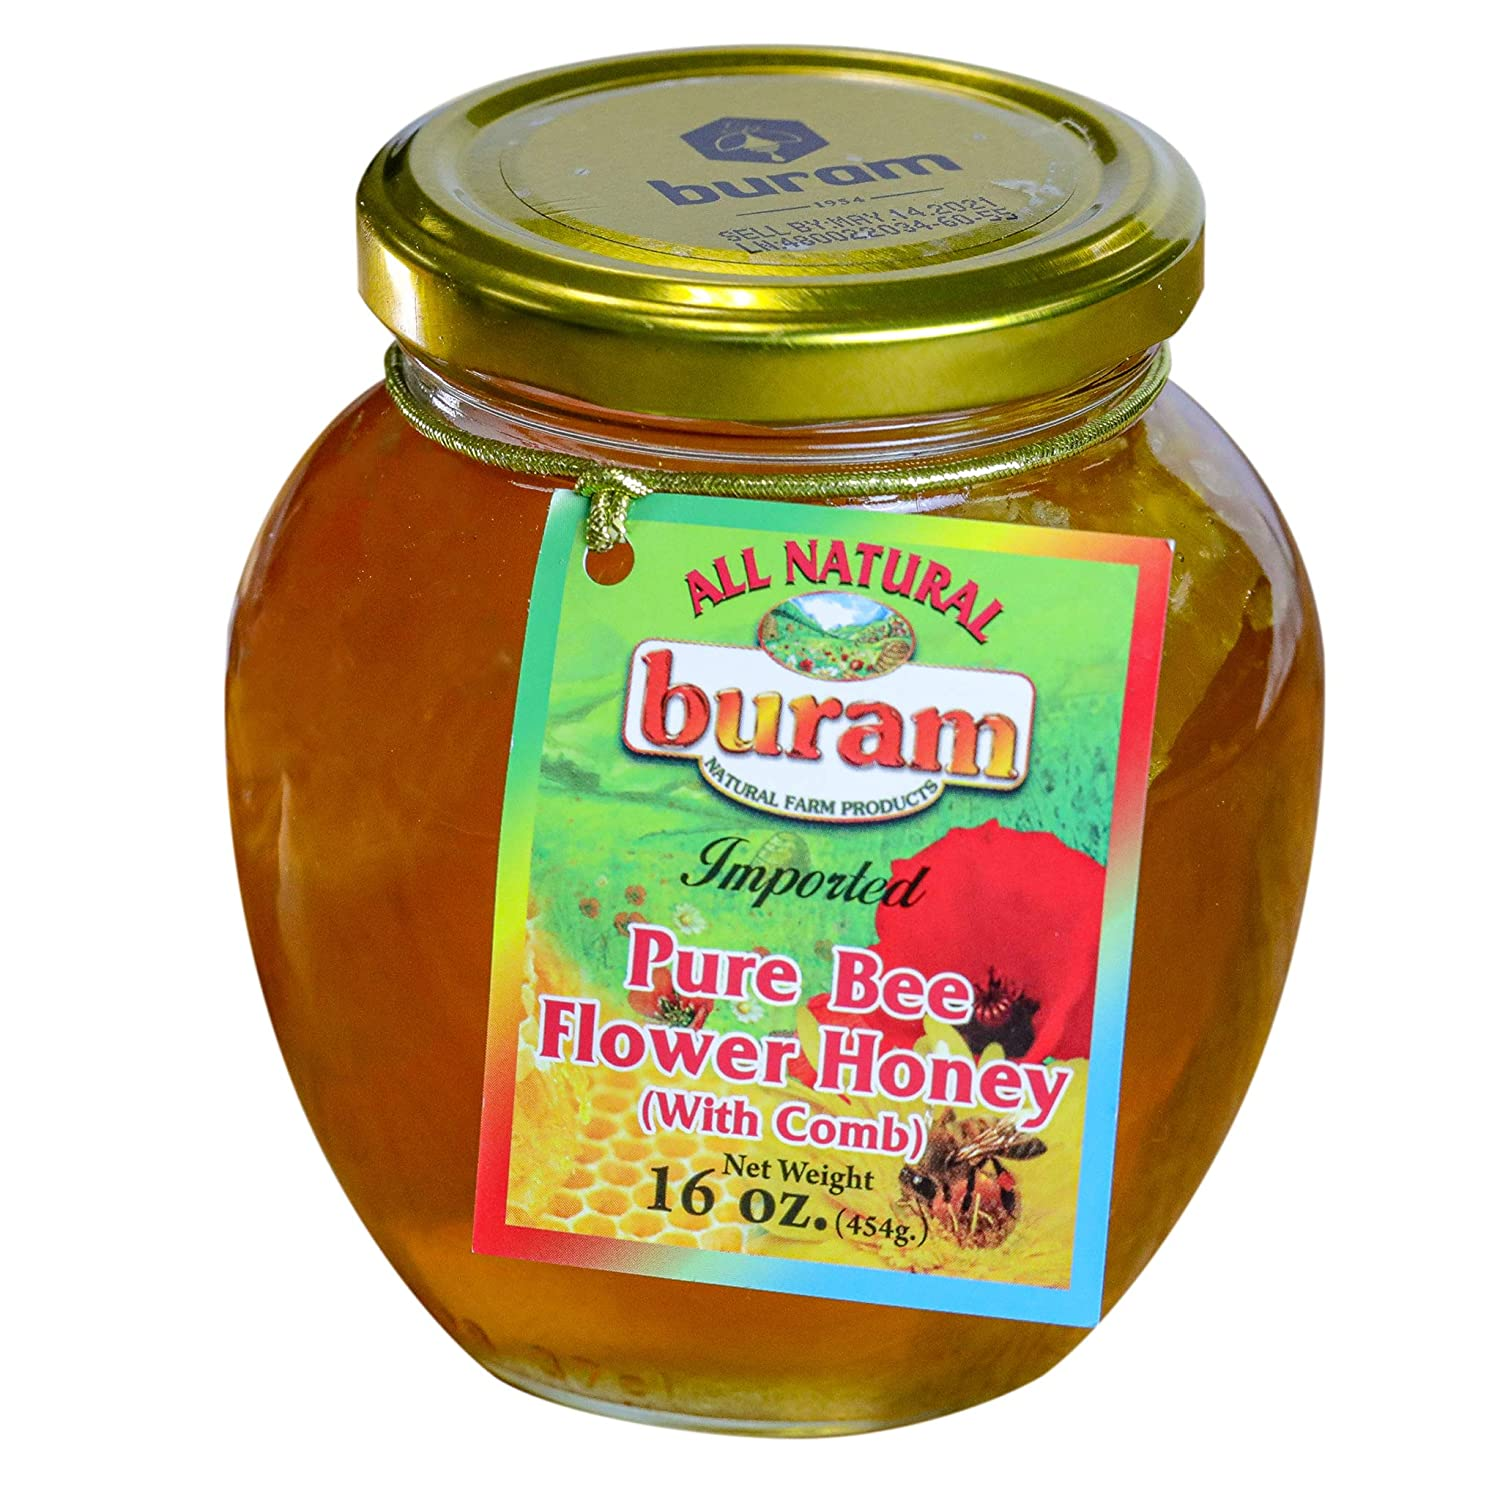 Washington Mall Buram Honey with Combs Flower Pure gift Comb 100% Unfiltered